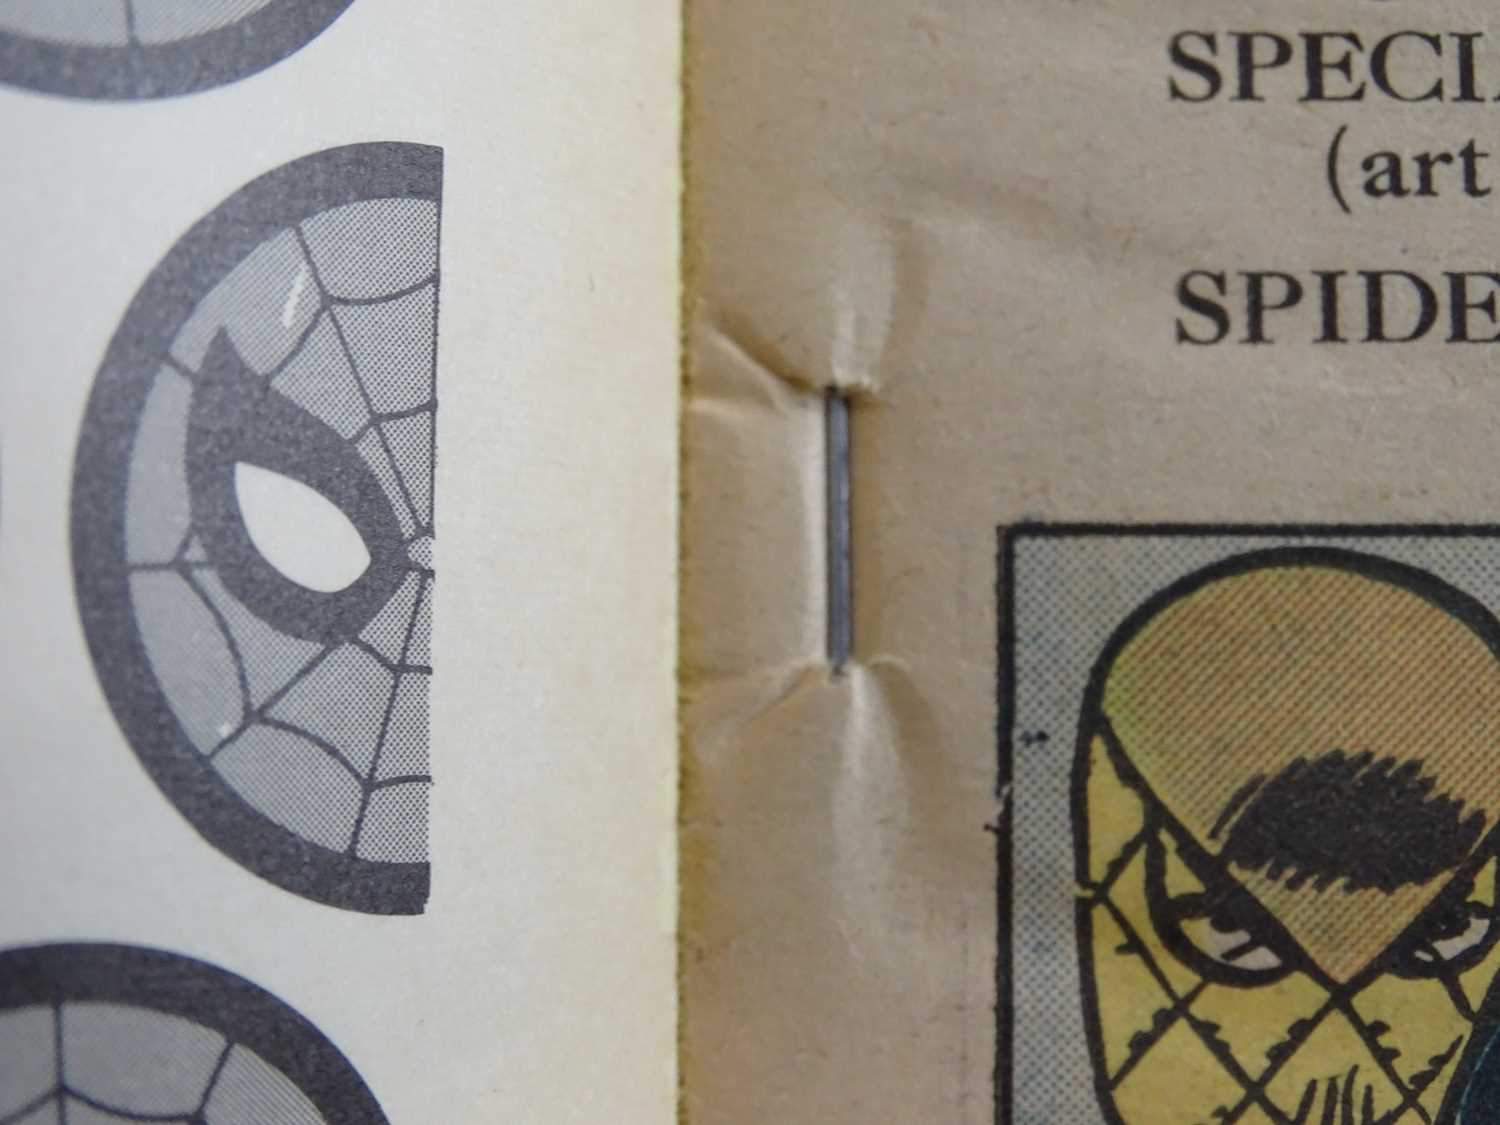 Marvel Treasury Edition #1 Spectacular Spider-Man (Marvel - 1974) Includes Gil Kane and Steve - Image 5 of 8